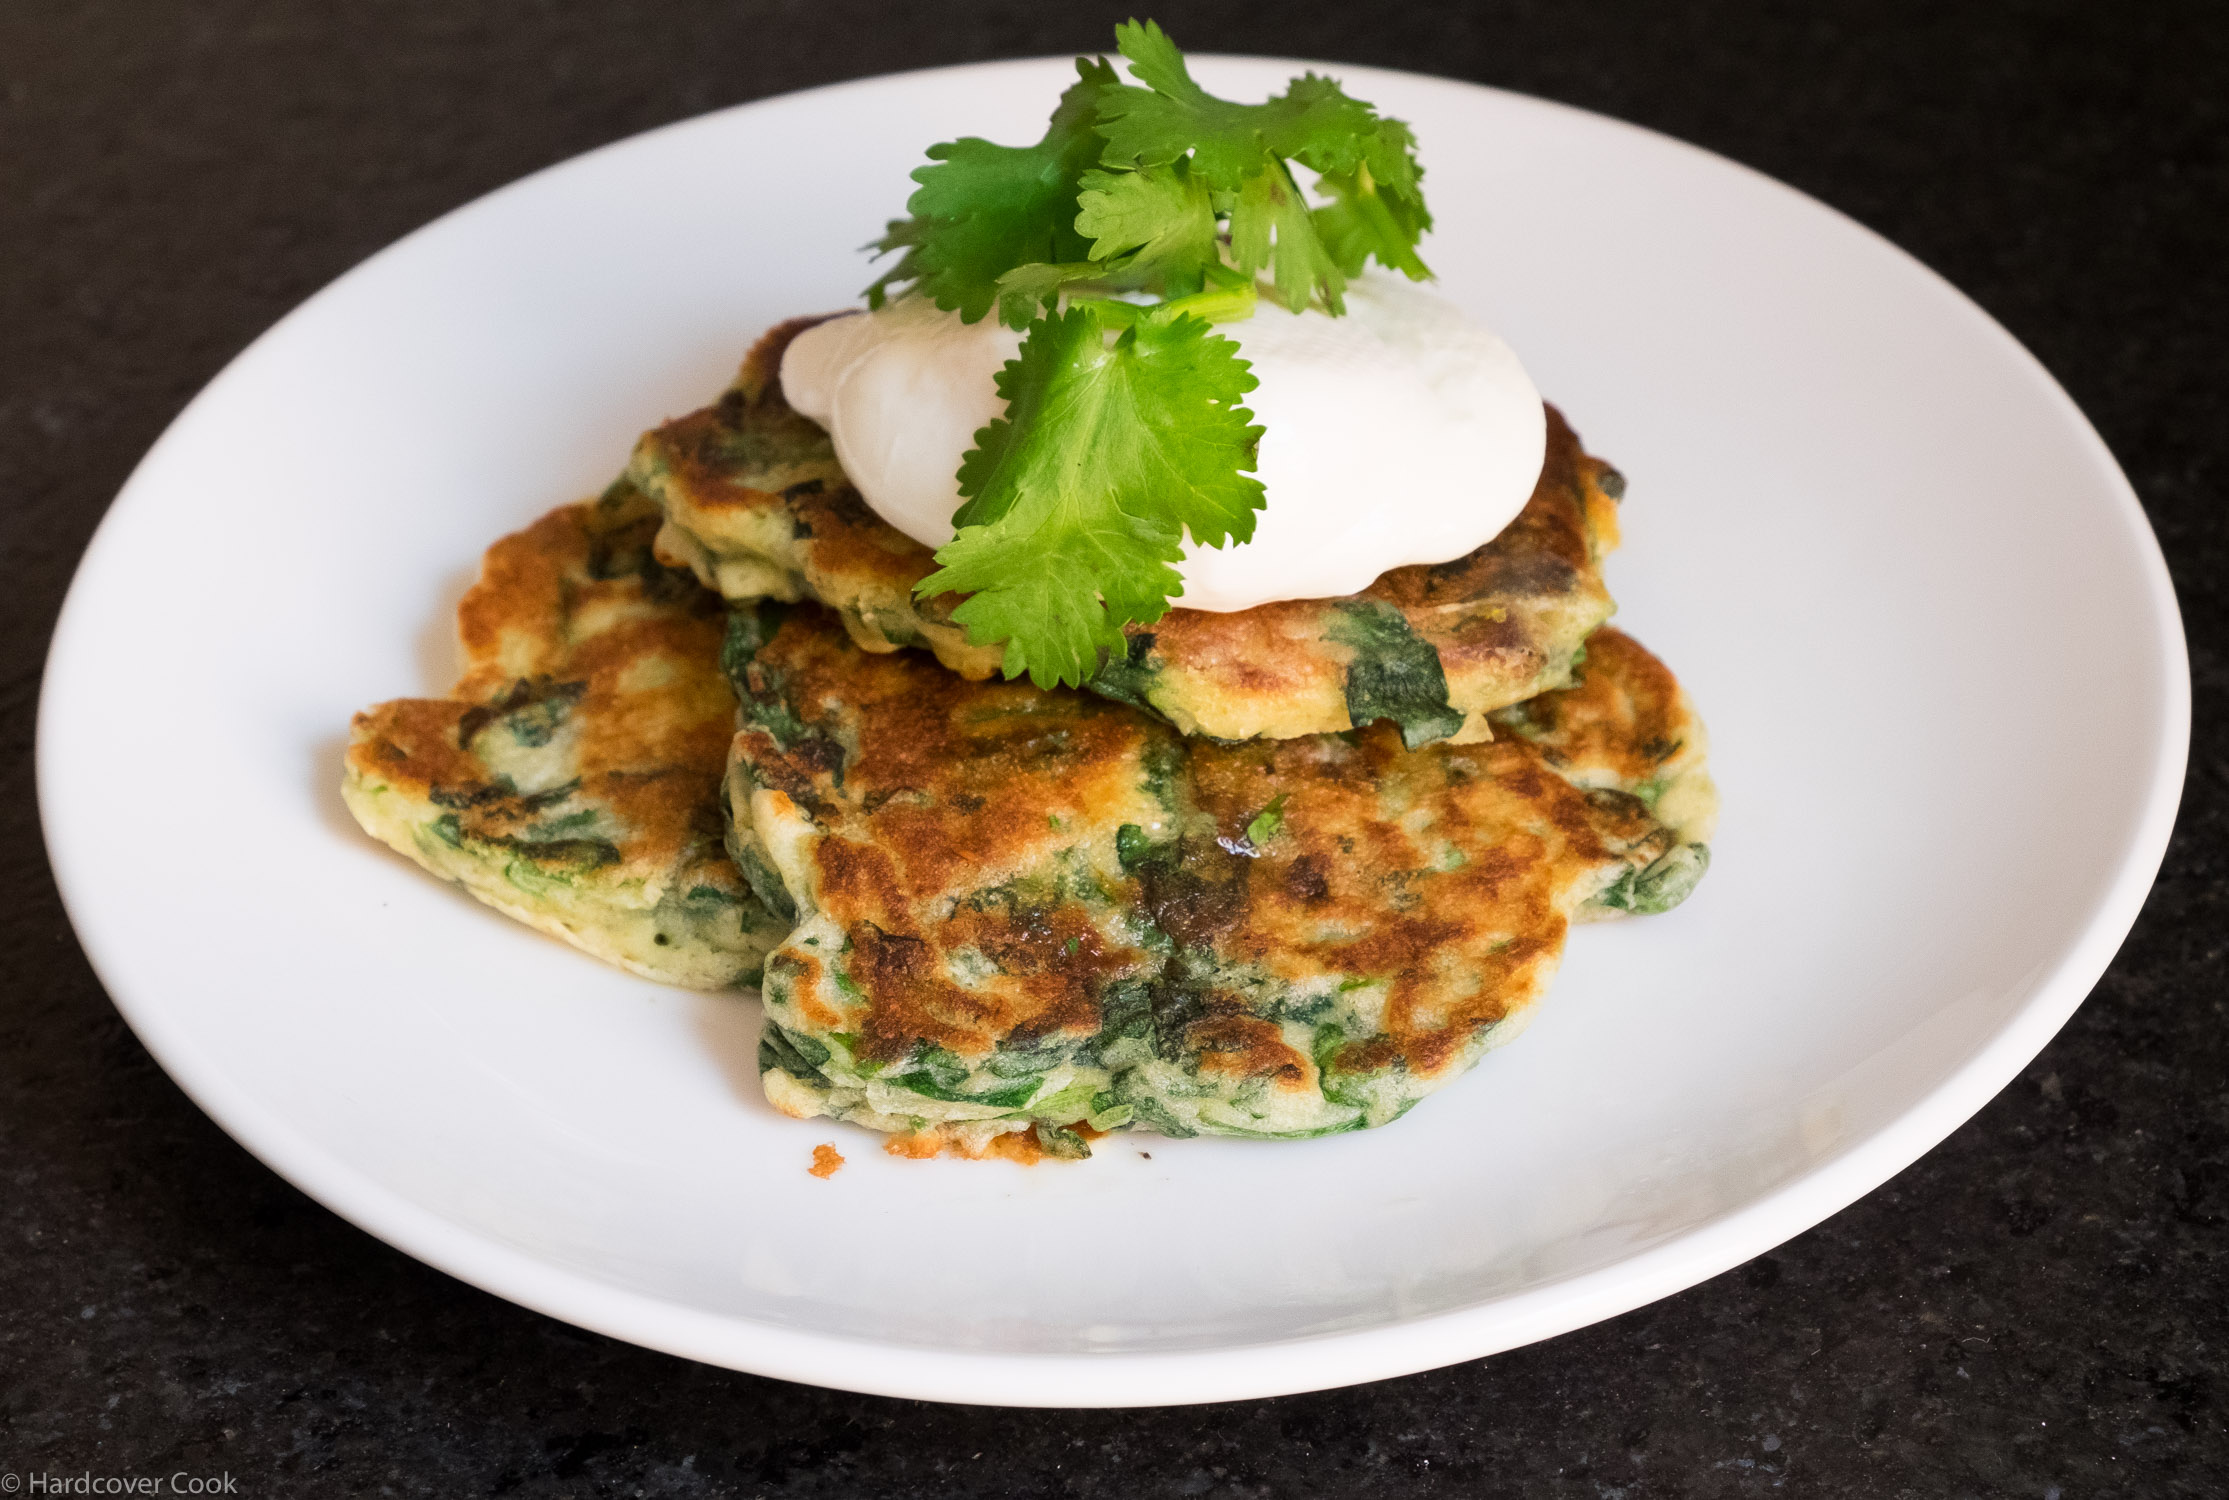 Savory pancakes served for brunch with a poached egg